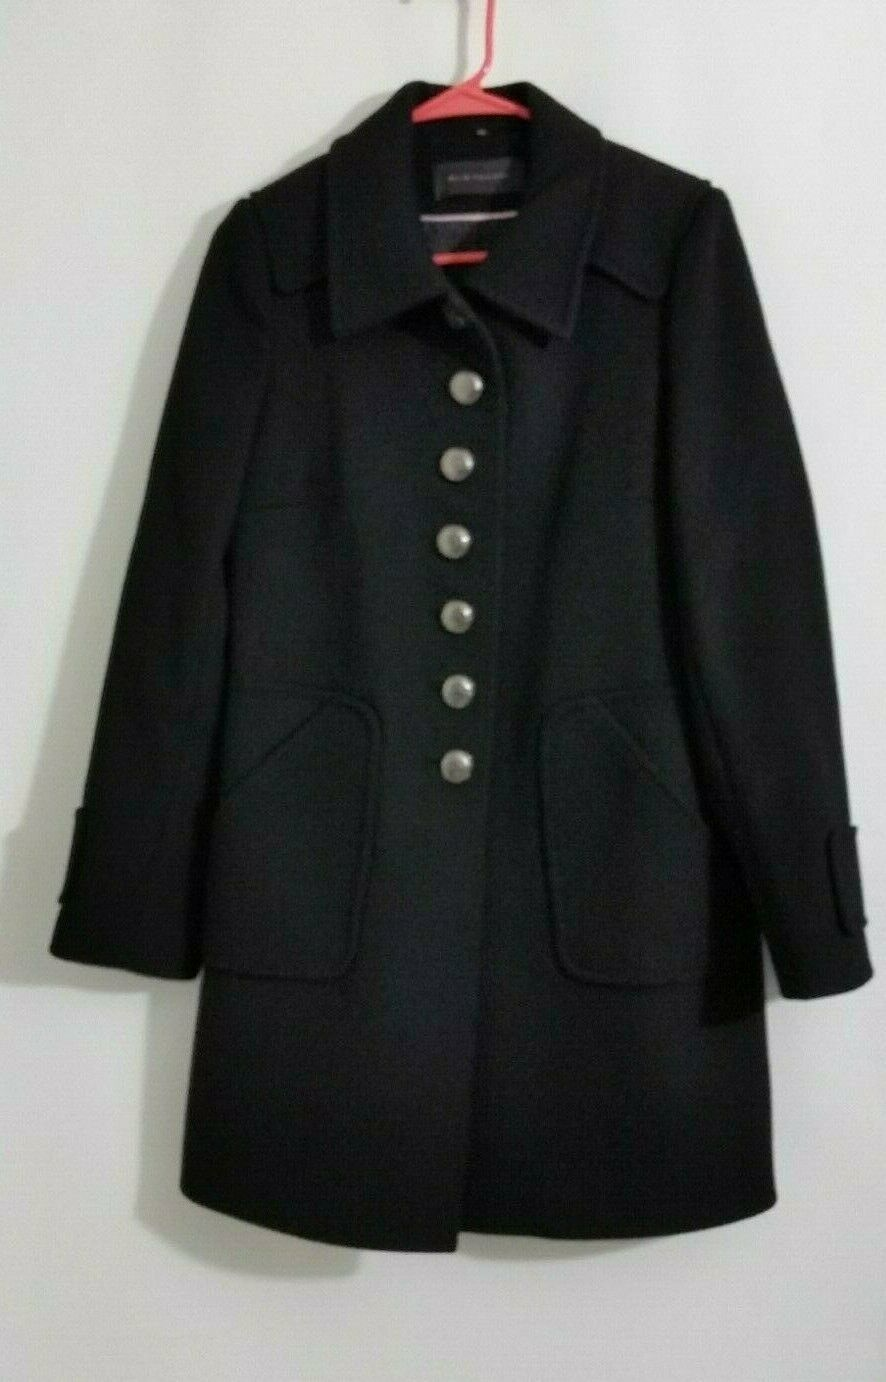 Primary image for Elie Tahari Womens Coat Black 100% Wool Button Size 6